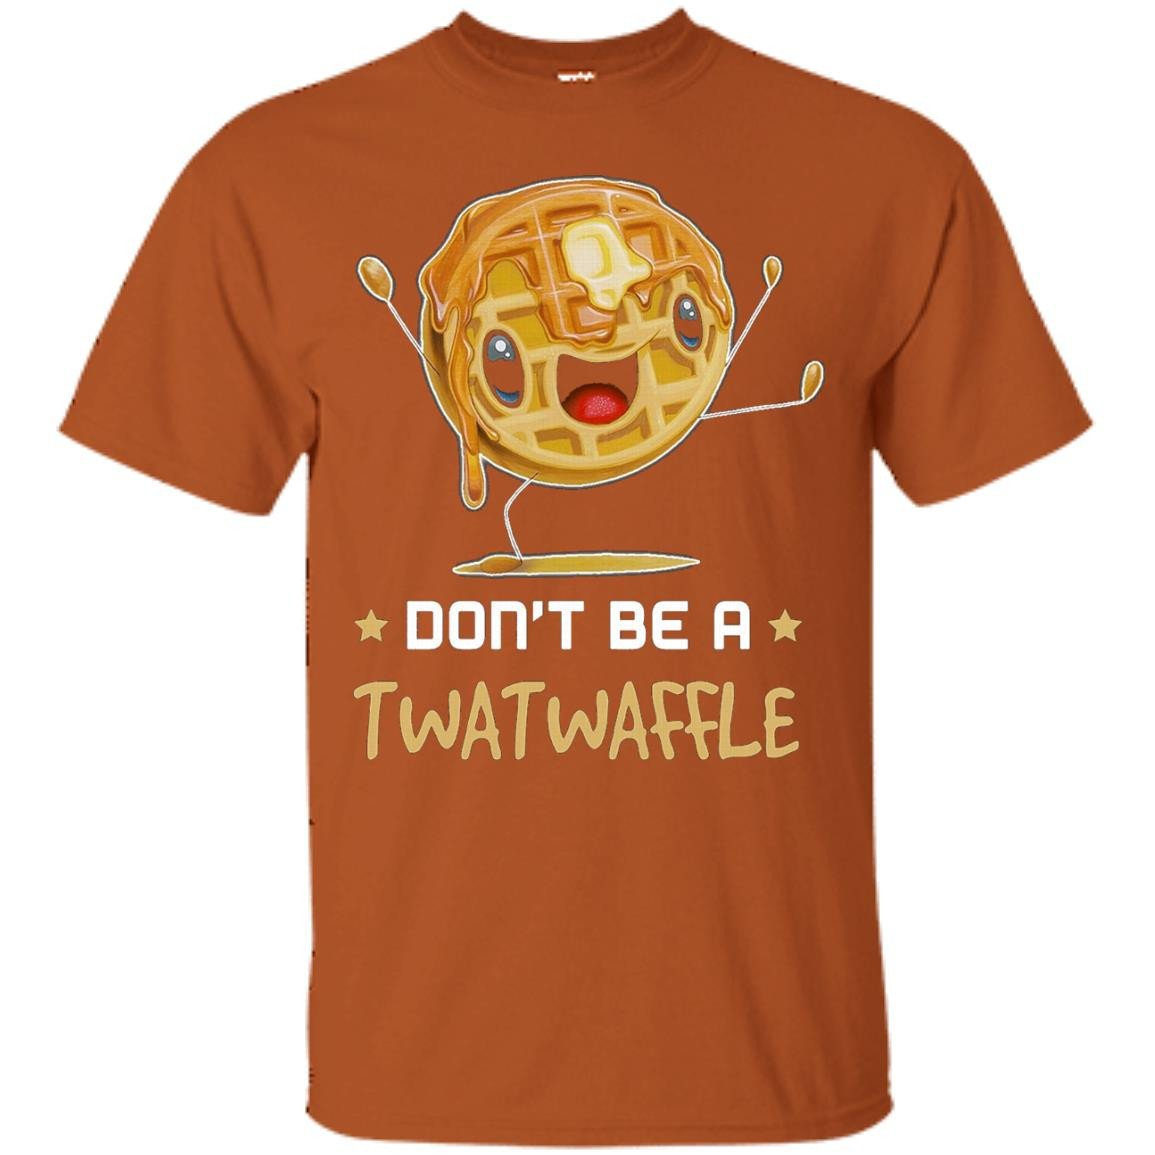 Don't be a Twatwaffle shirt - T-Shirt